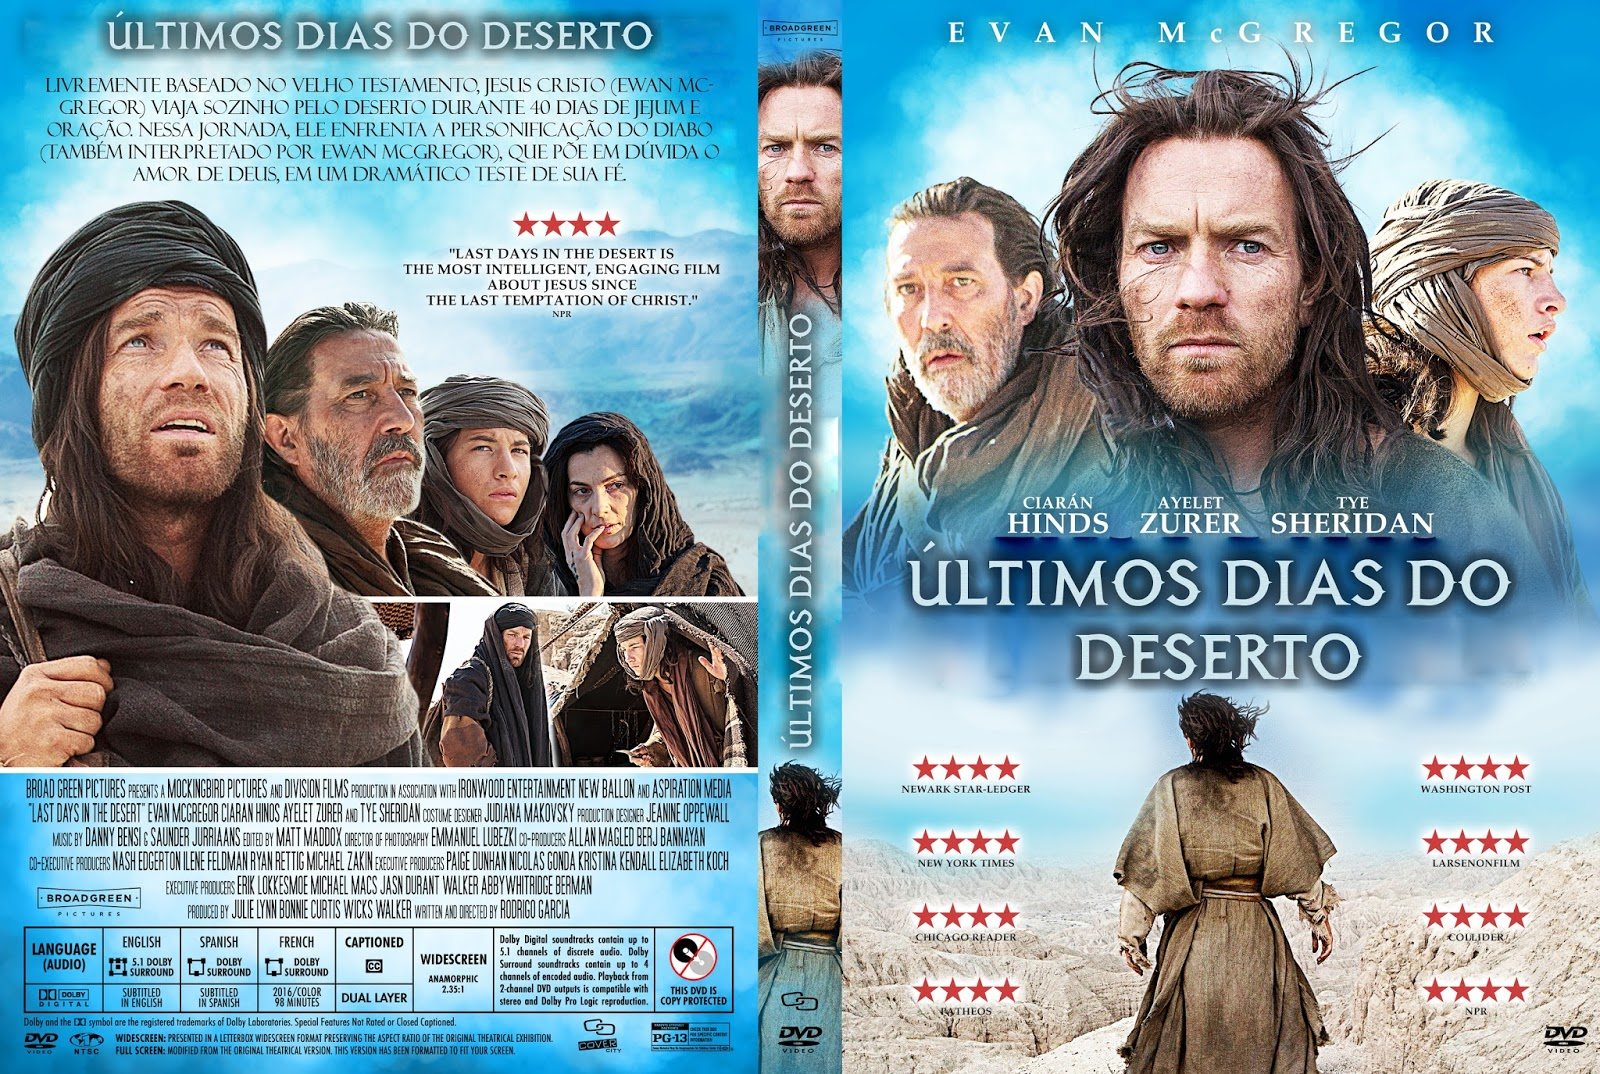 Download Últimos Dias no Deserto DVD-R Download Últimos Dias no Deserto DVD-R  25C3 259Altimos 2BDias 2Bno 2BDeserto 2B 25E2 2580 2593 2BCAPA